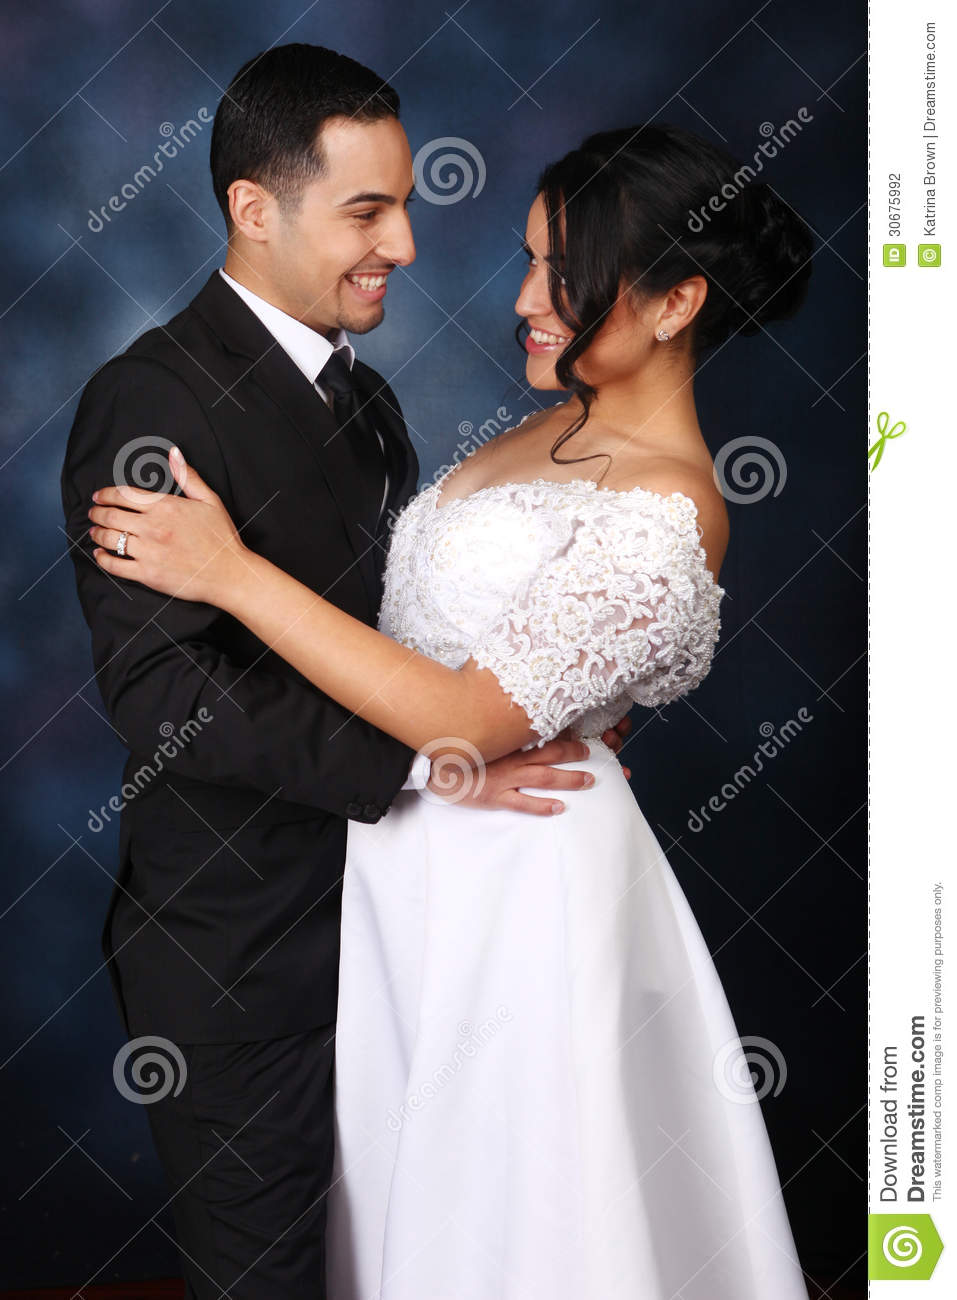 Happy Wedding Couple in Love